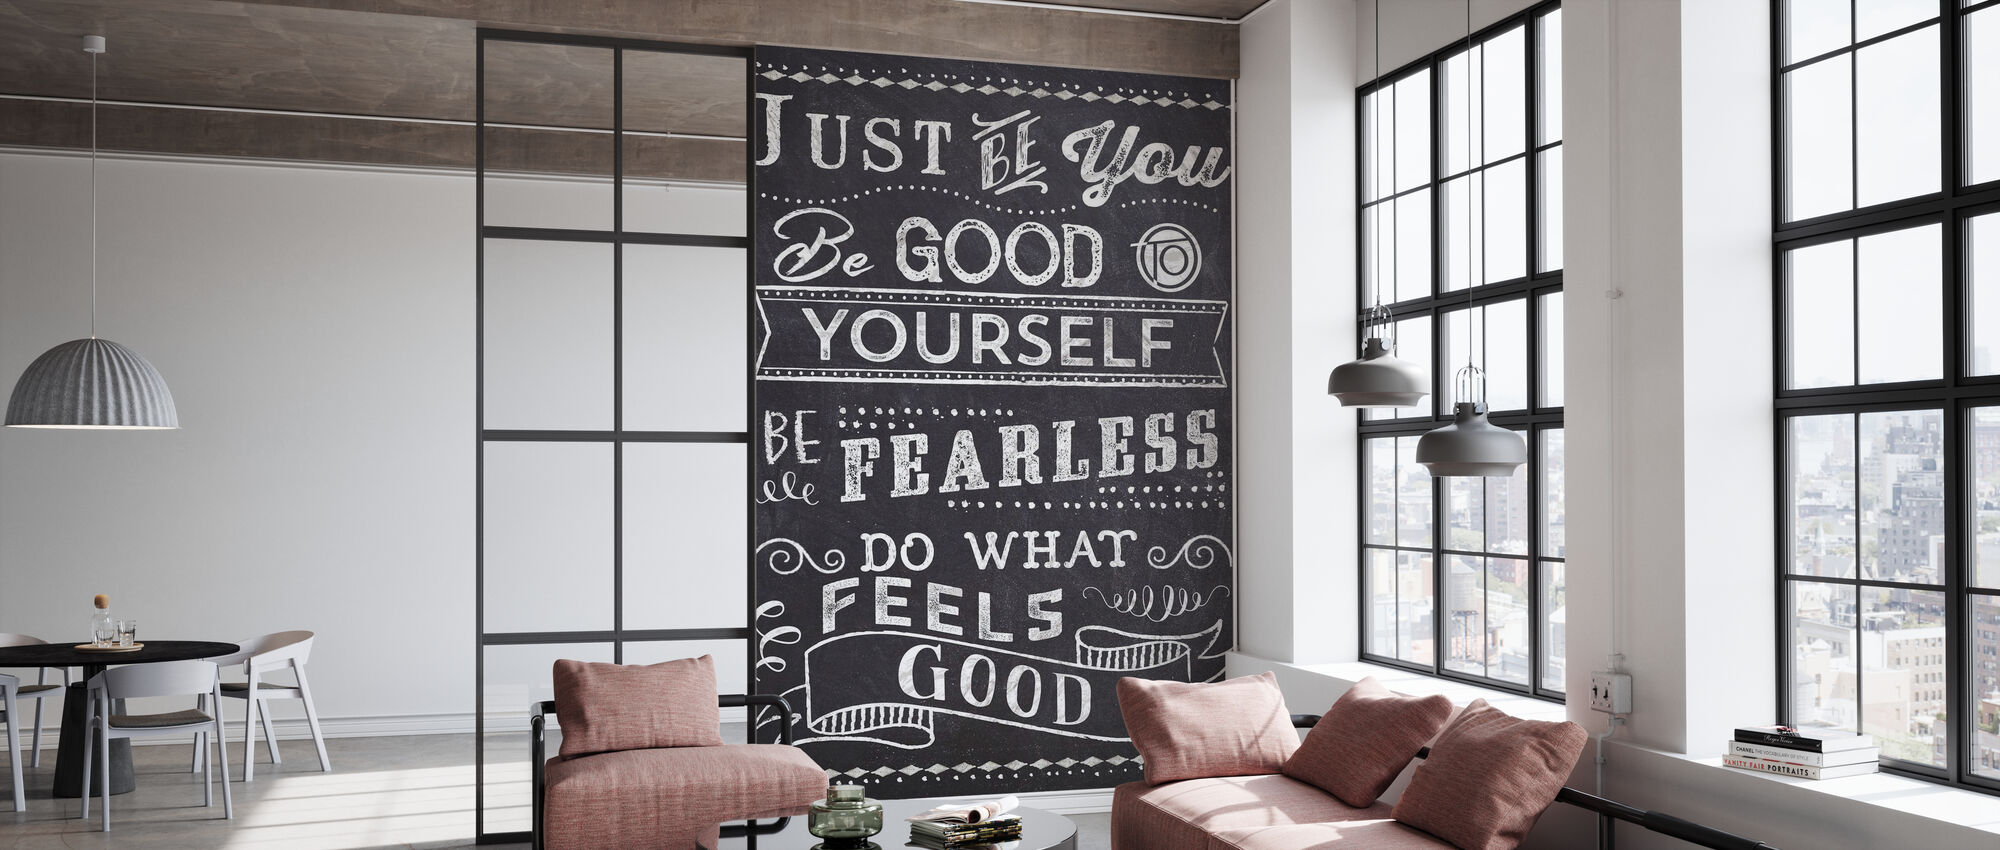 Just Be You II - Wallpaper - Office